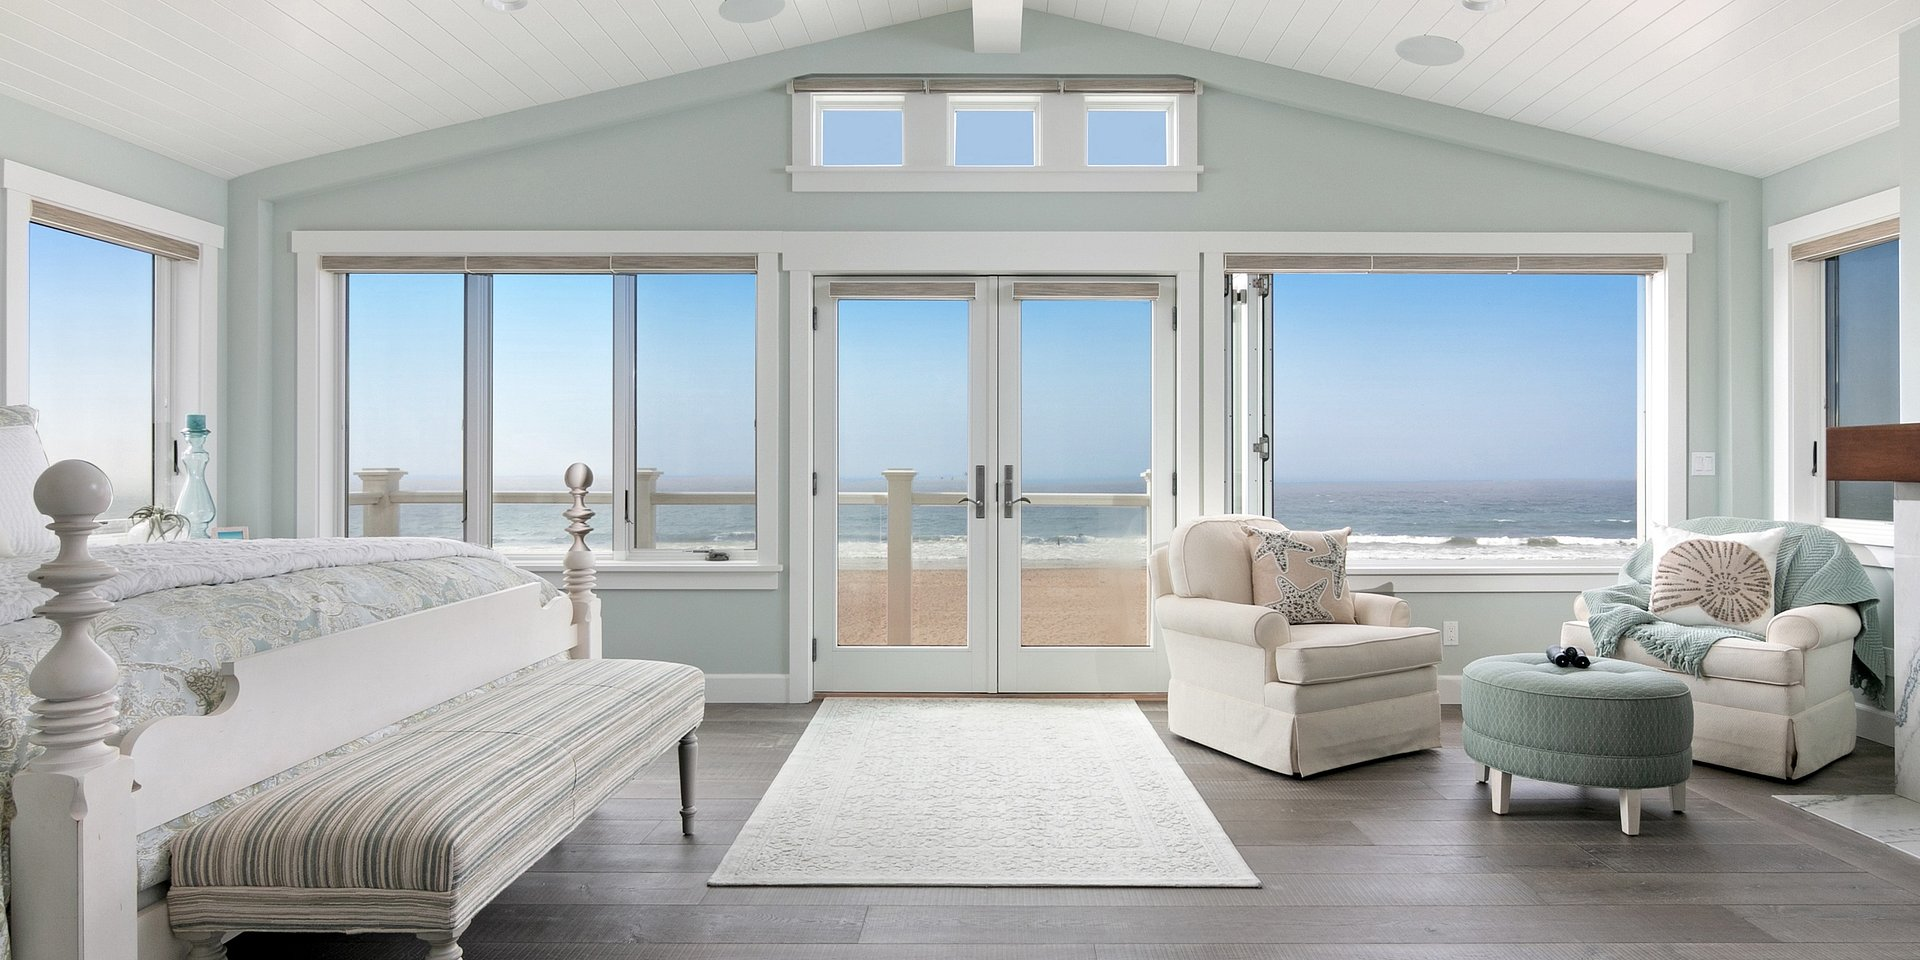 Coldwell Banker Residential Brokerage Lists Beachfront Oxnard Property for $5.6 Million